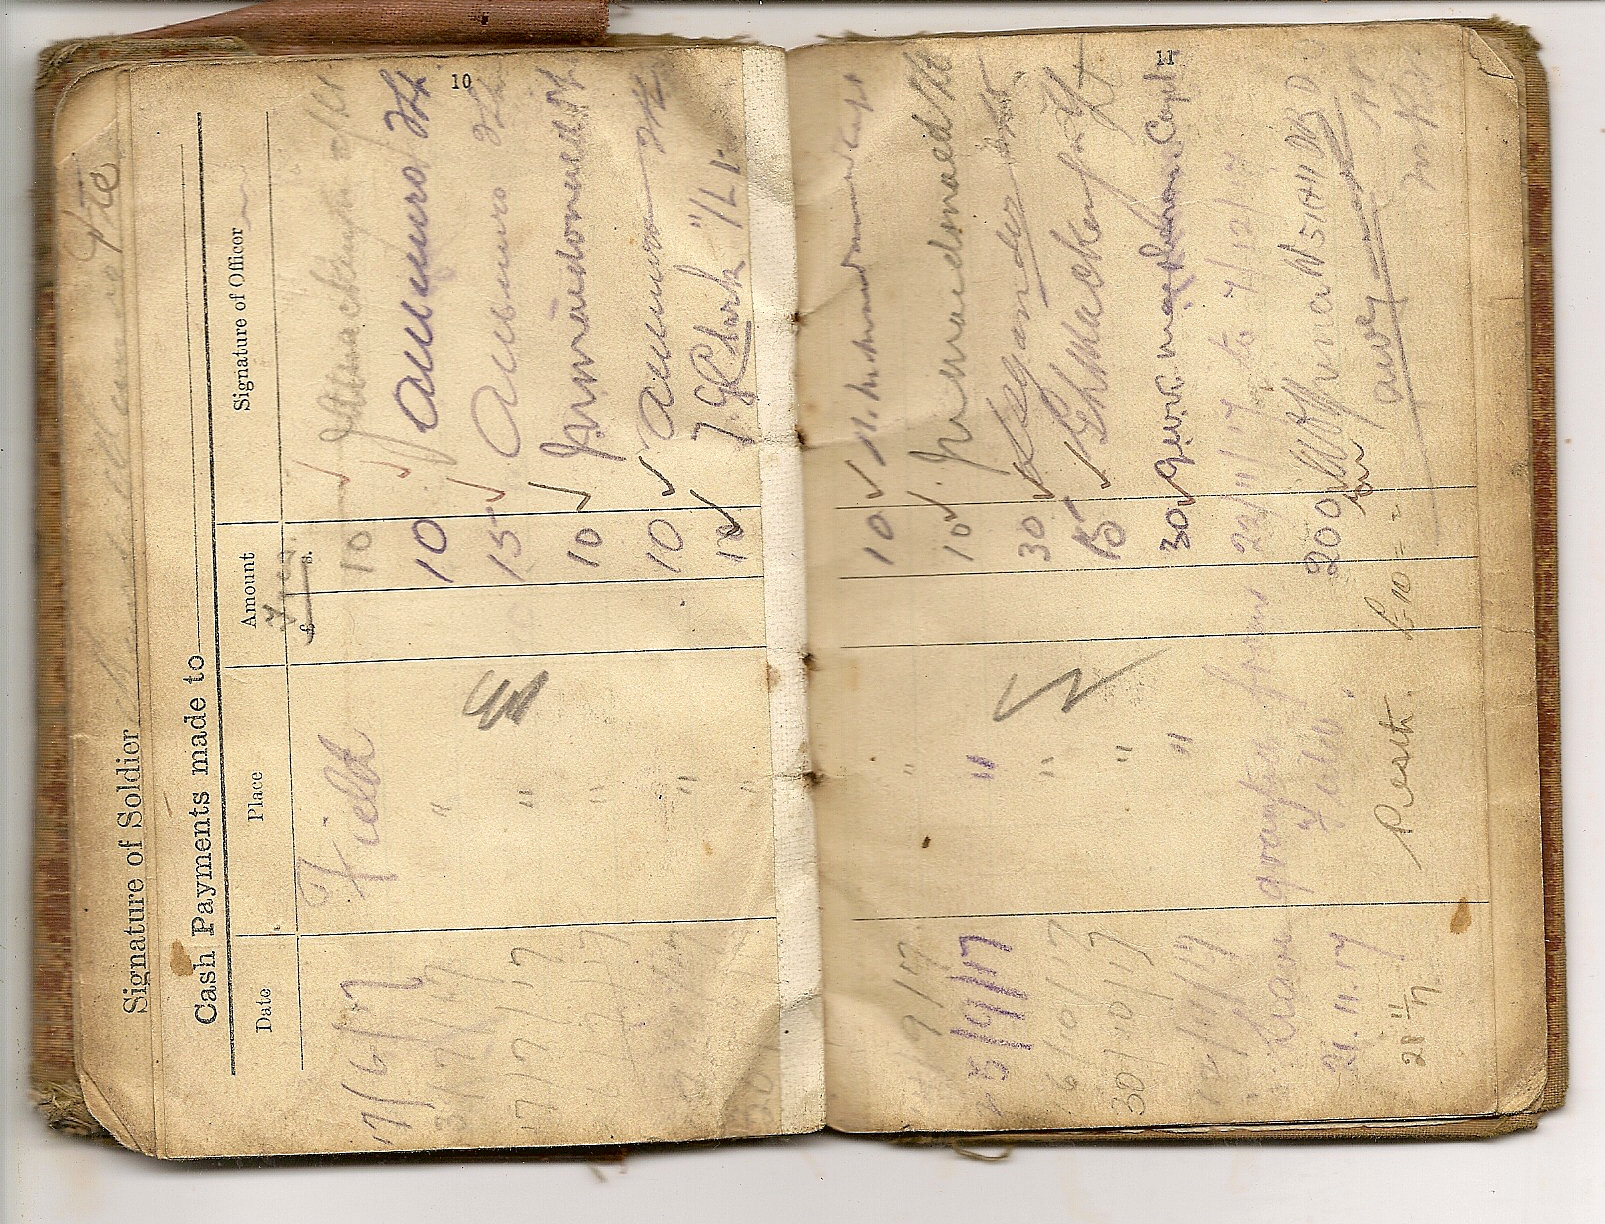 image of soldier's pay book next pages